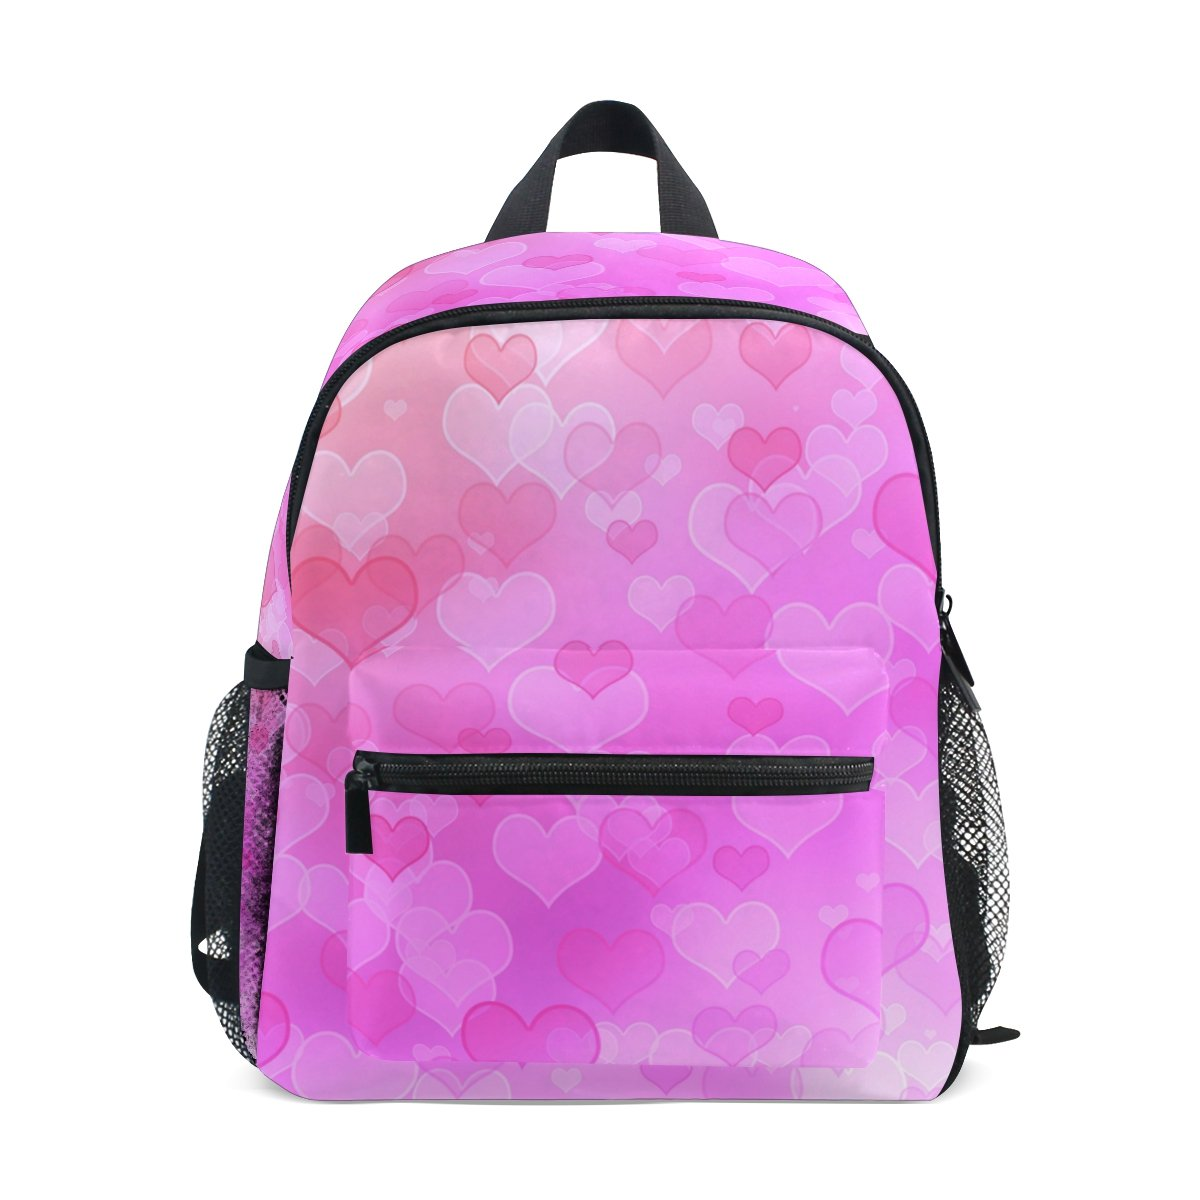 My Daily Kids Backpack Pink Hearts Valentine's Day Wedding Nursery Bags for Preschool Children